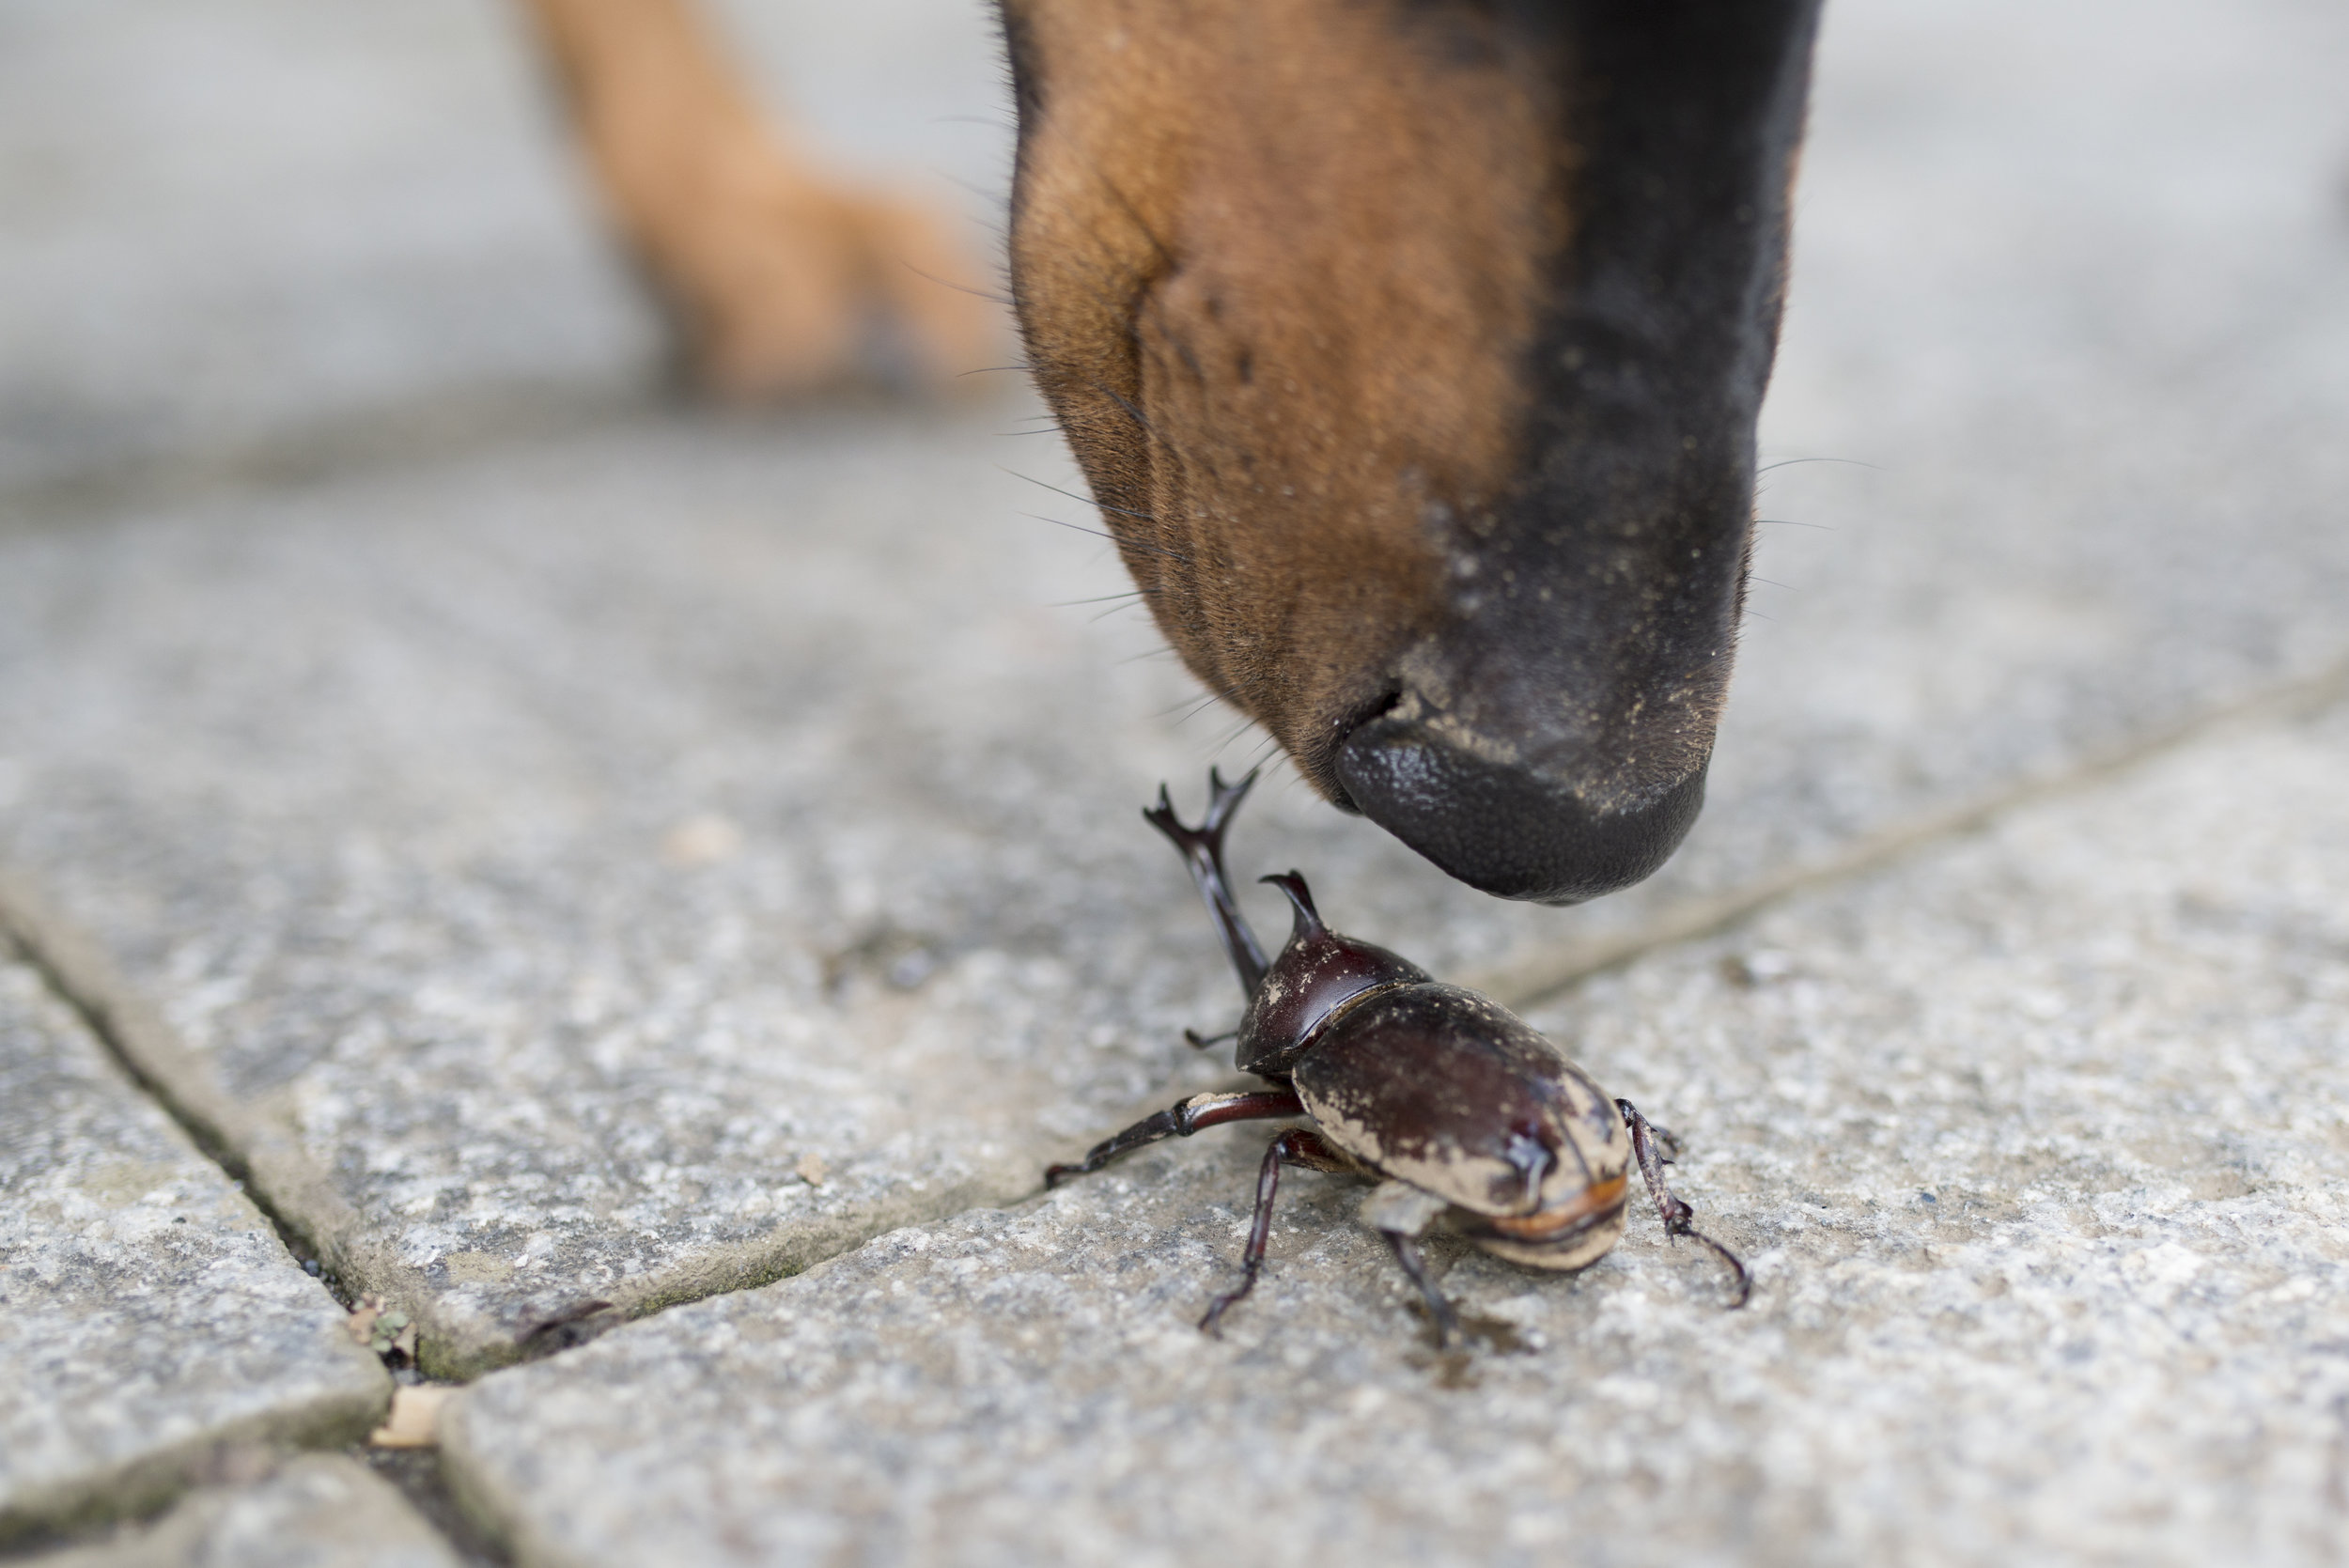 Using K9 Inspections in Nassau County, NY, Commercial Pest Control